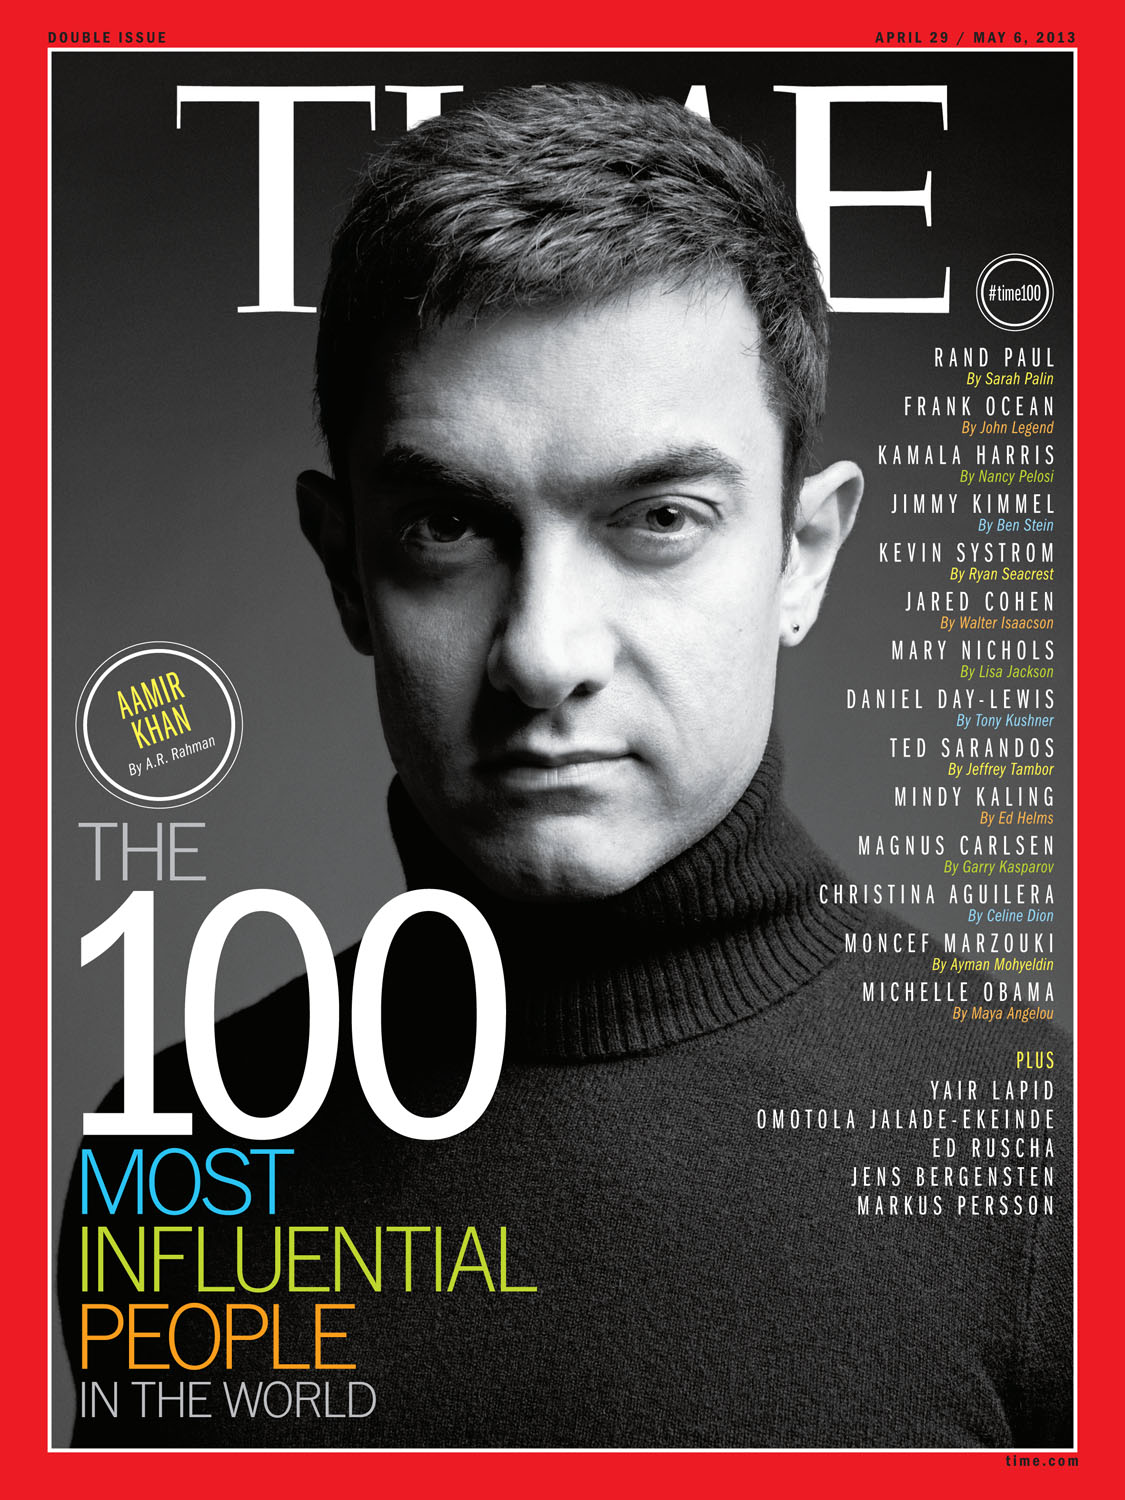 khan2 Aamir Khan on Time Magazines List of 100 Most Influential People in the World!